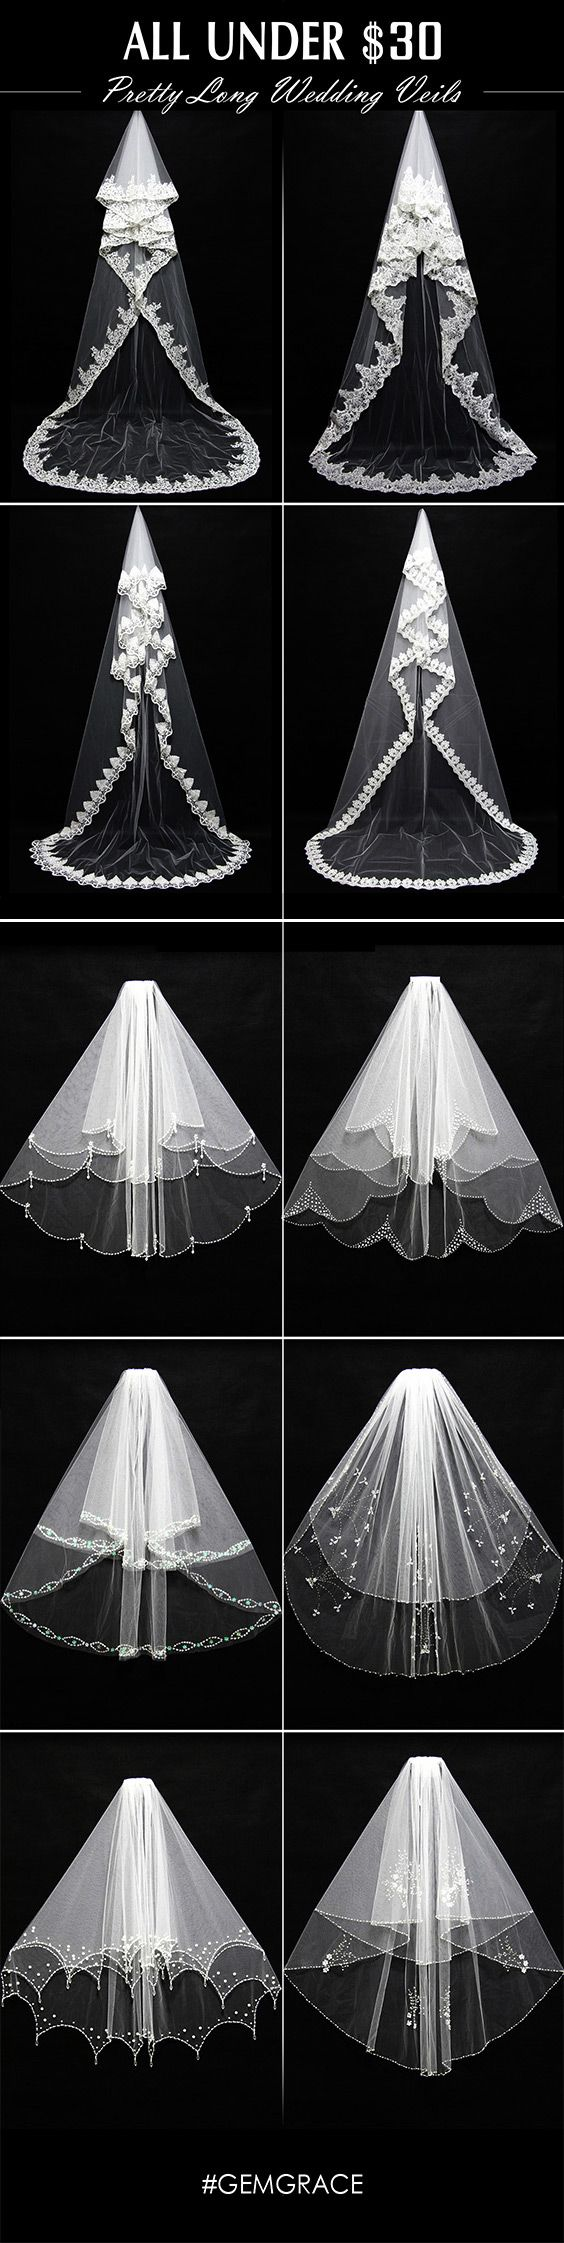 Ideas for wedding veil long lace styles | Getting your wedding outfit perfect with a right wedding veil. The only thing that could make a wedding dress better is finding the perfect bridal veils to match with it. #GemGrace Shop New Arrivals, All Free Shipping!